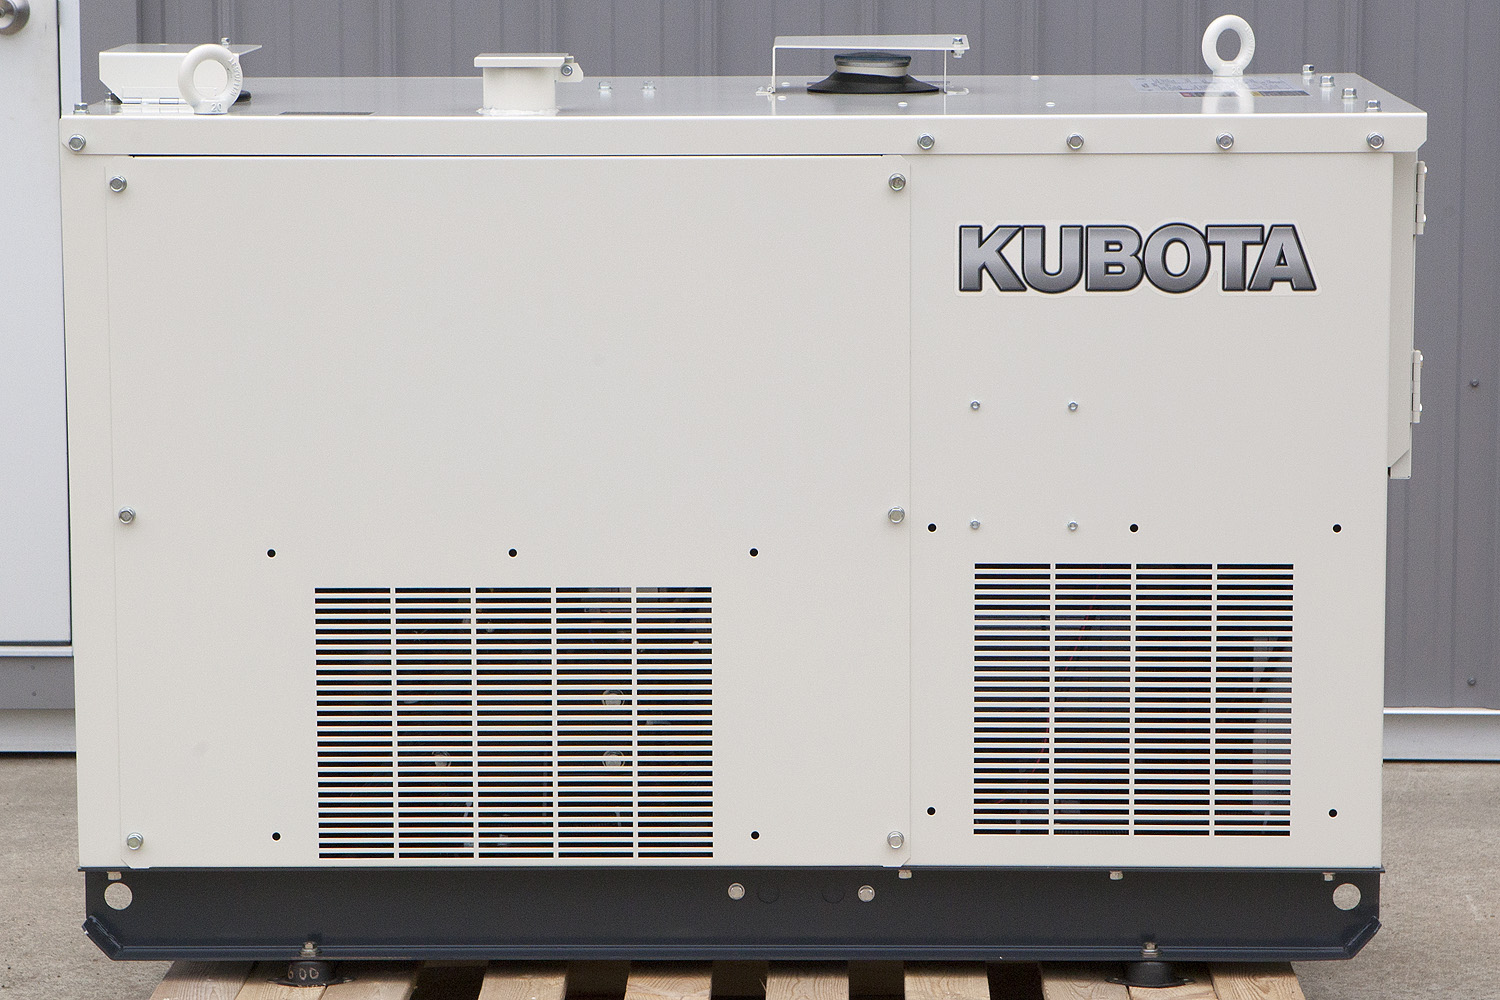 Kubota Cooling System Diagram Wiring Diagram Photos For Help Your